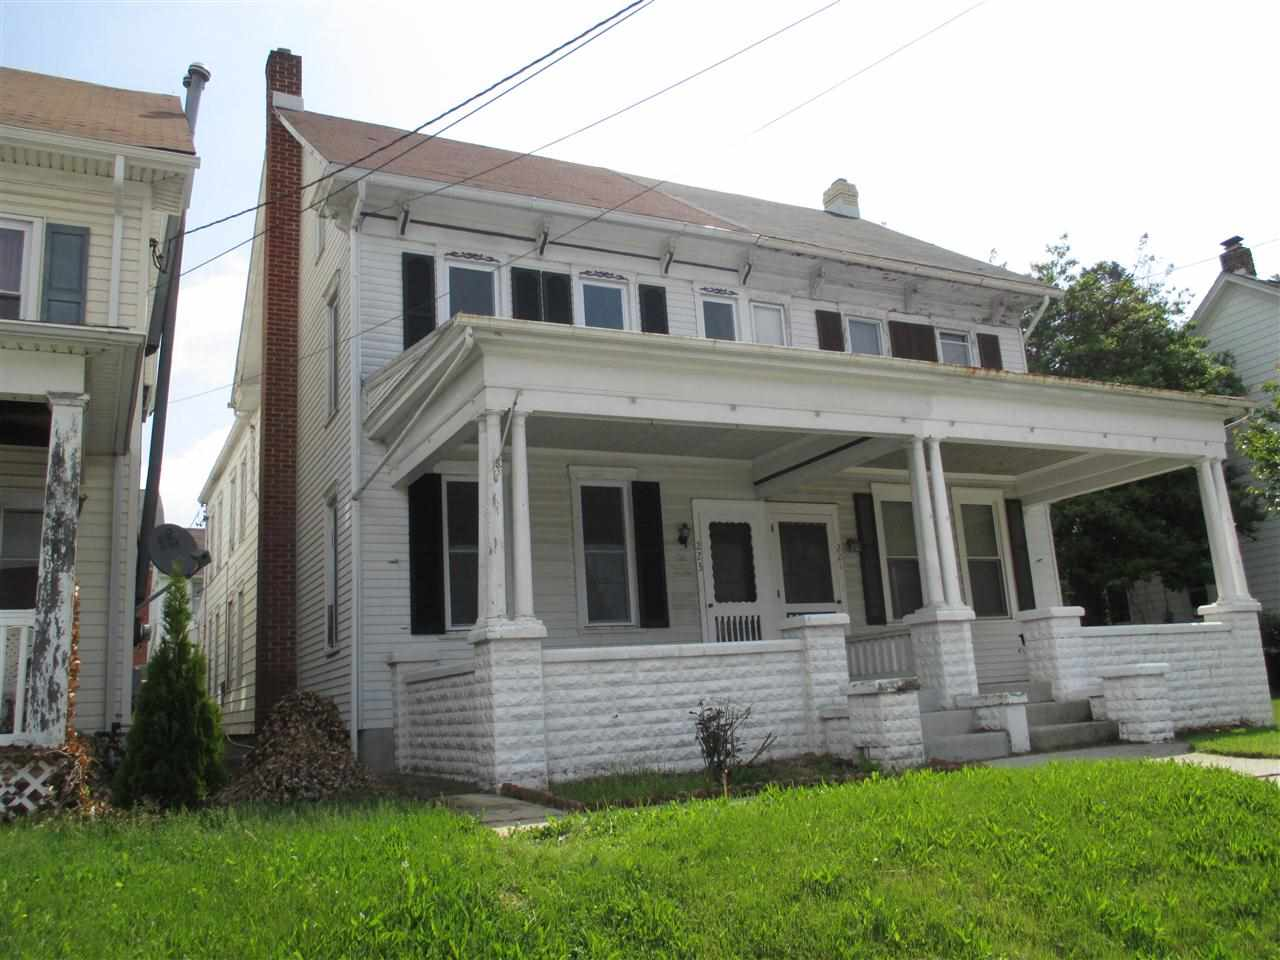 223 N Main St, Red Lion, PA 17356